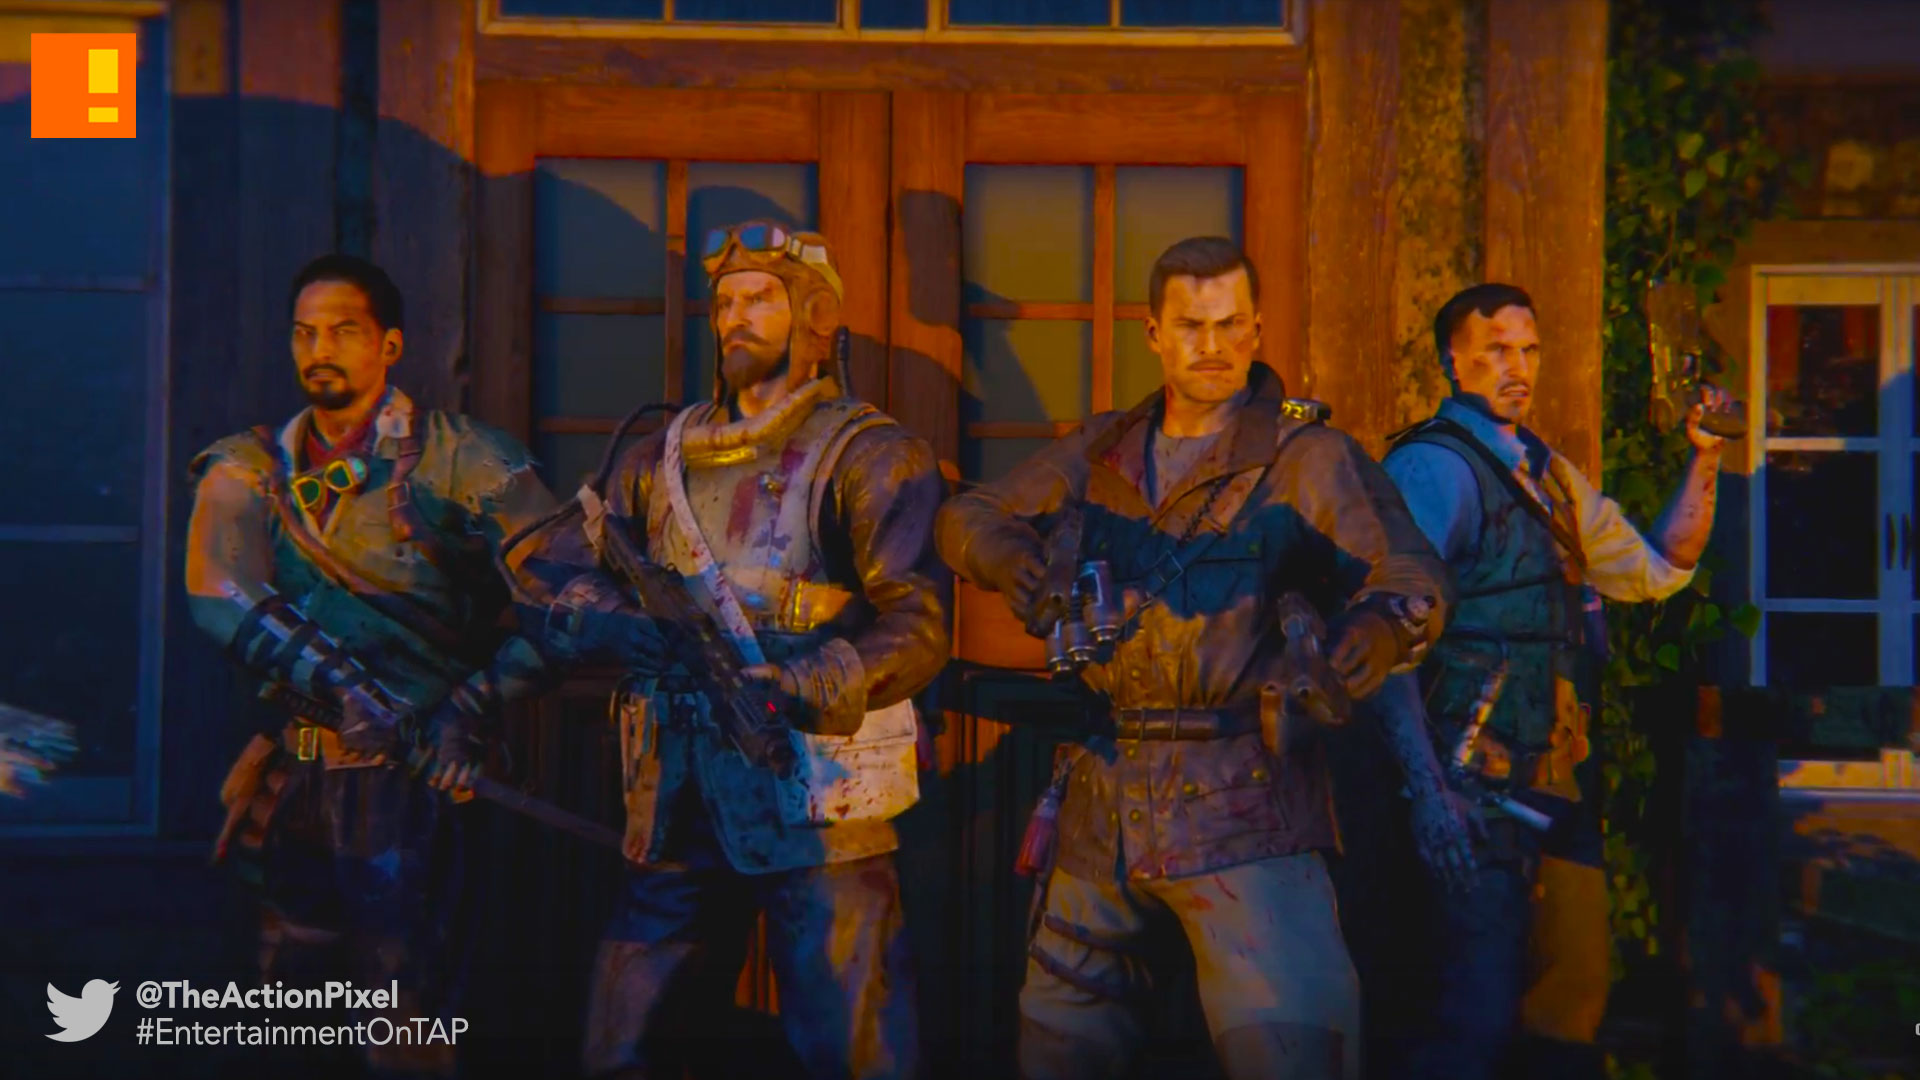 bo3,revelations, call of duty, black ops 3, entertainment on tap, treyarch, treyarch studios, the action pixel